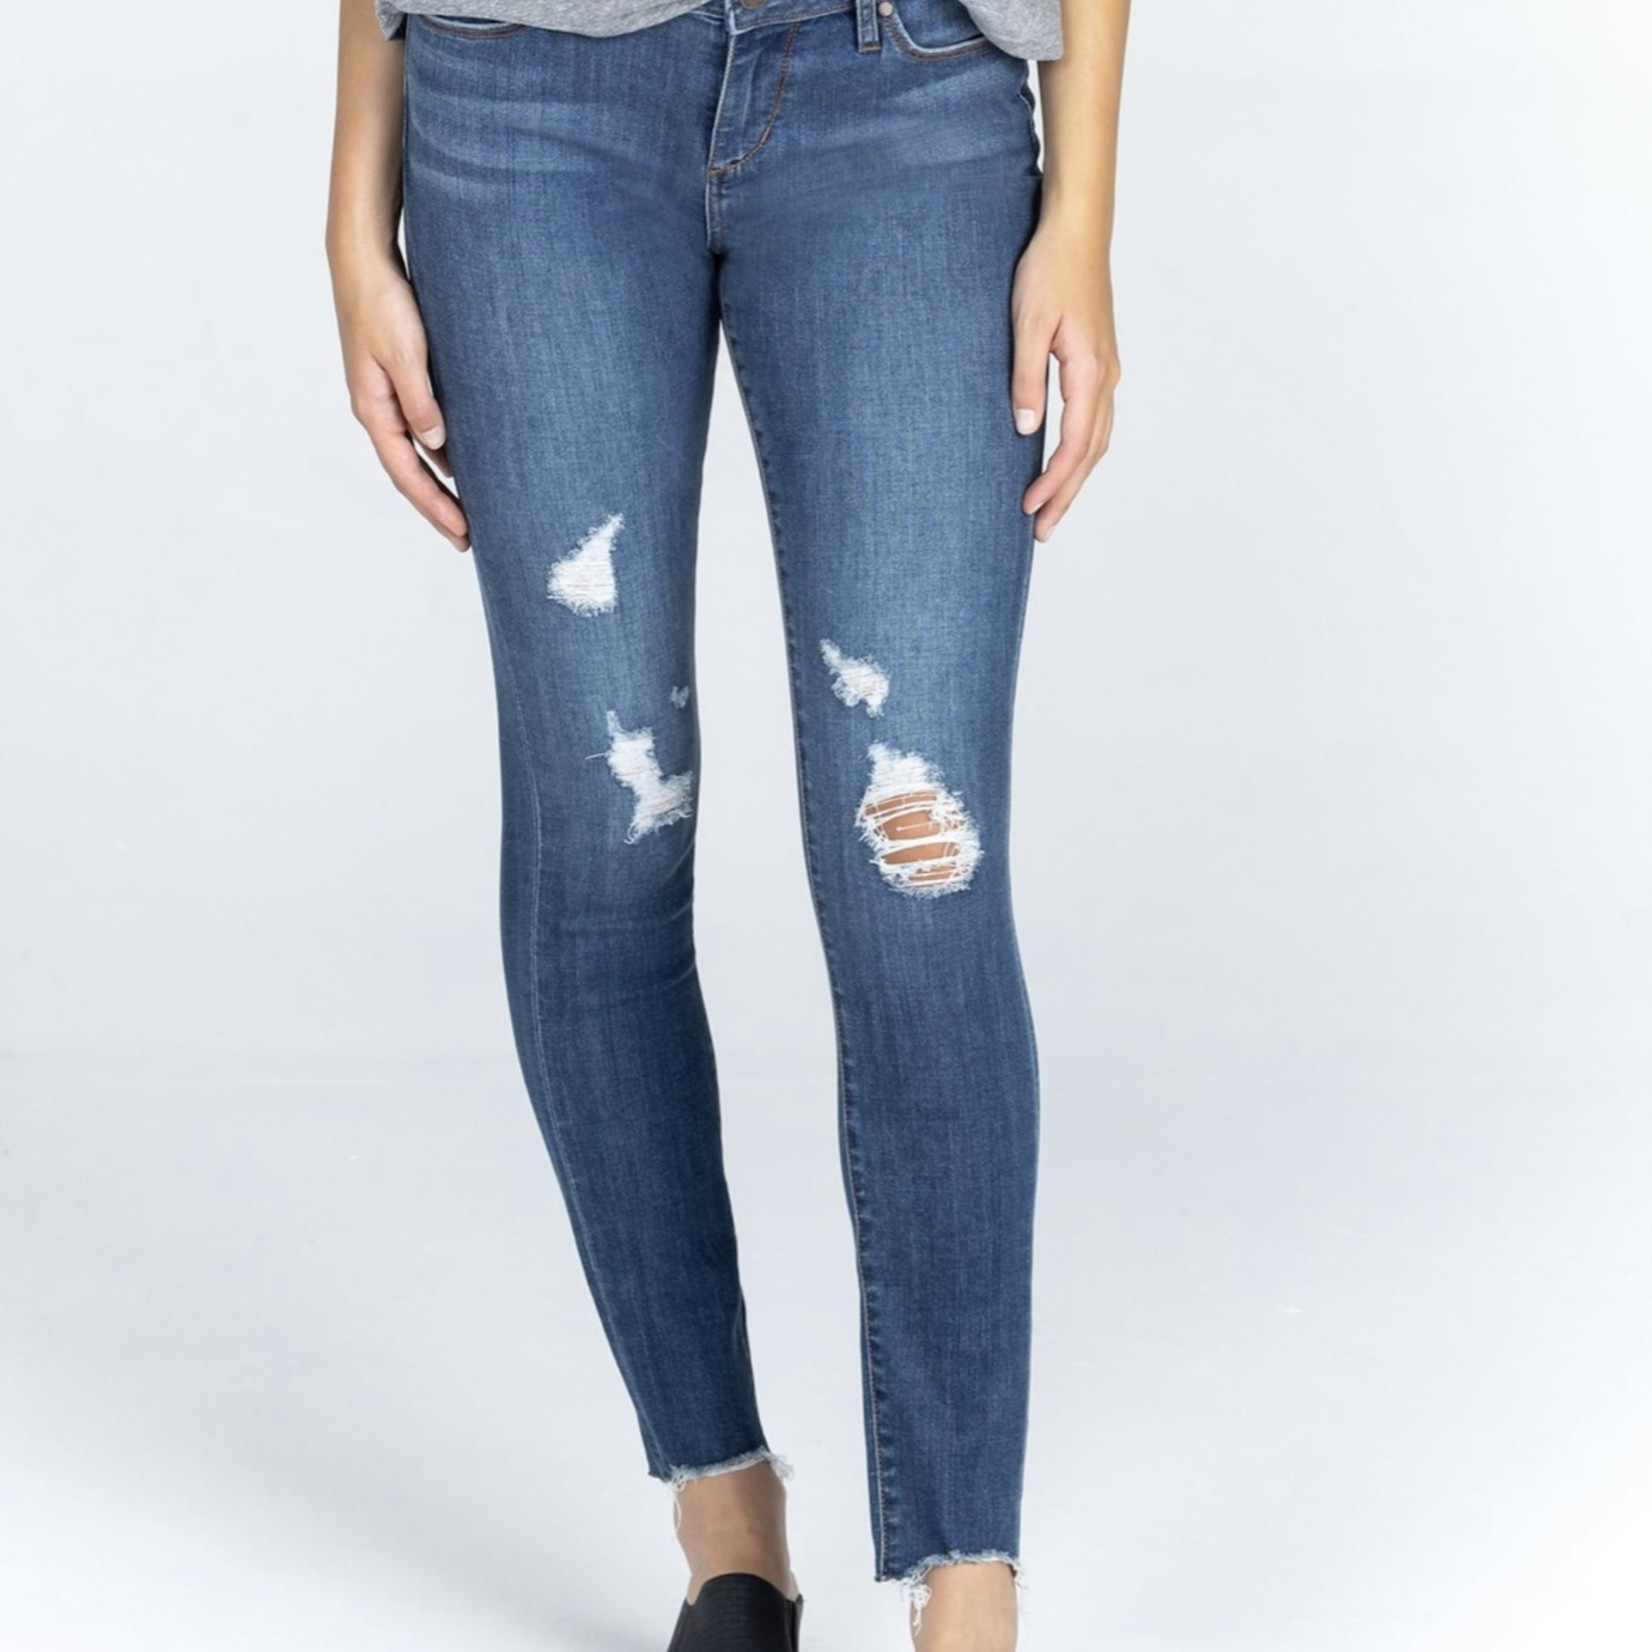 Articles Of Society Articles of Society Sarah Ankle Skinny Jeans